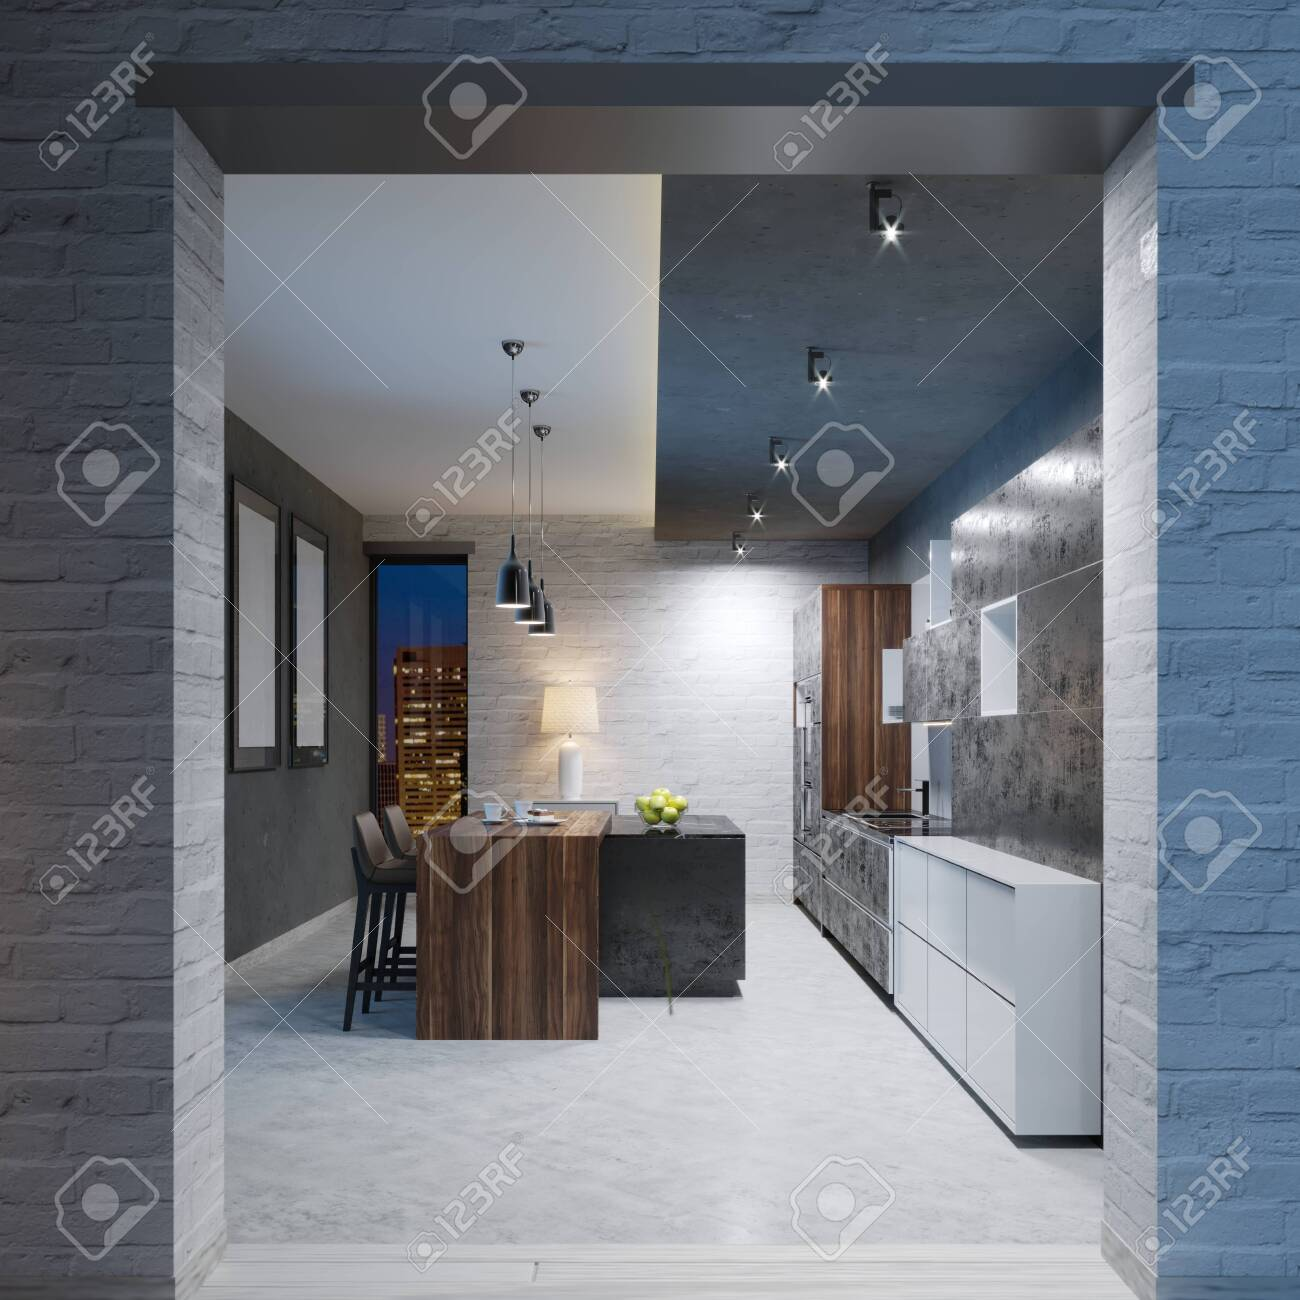 Modern Kitchen Design With A Long Center Island And Bar Table Stock Photo Picture And Royalty Free Image Image 113849648